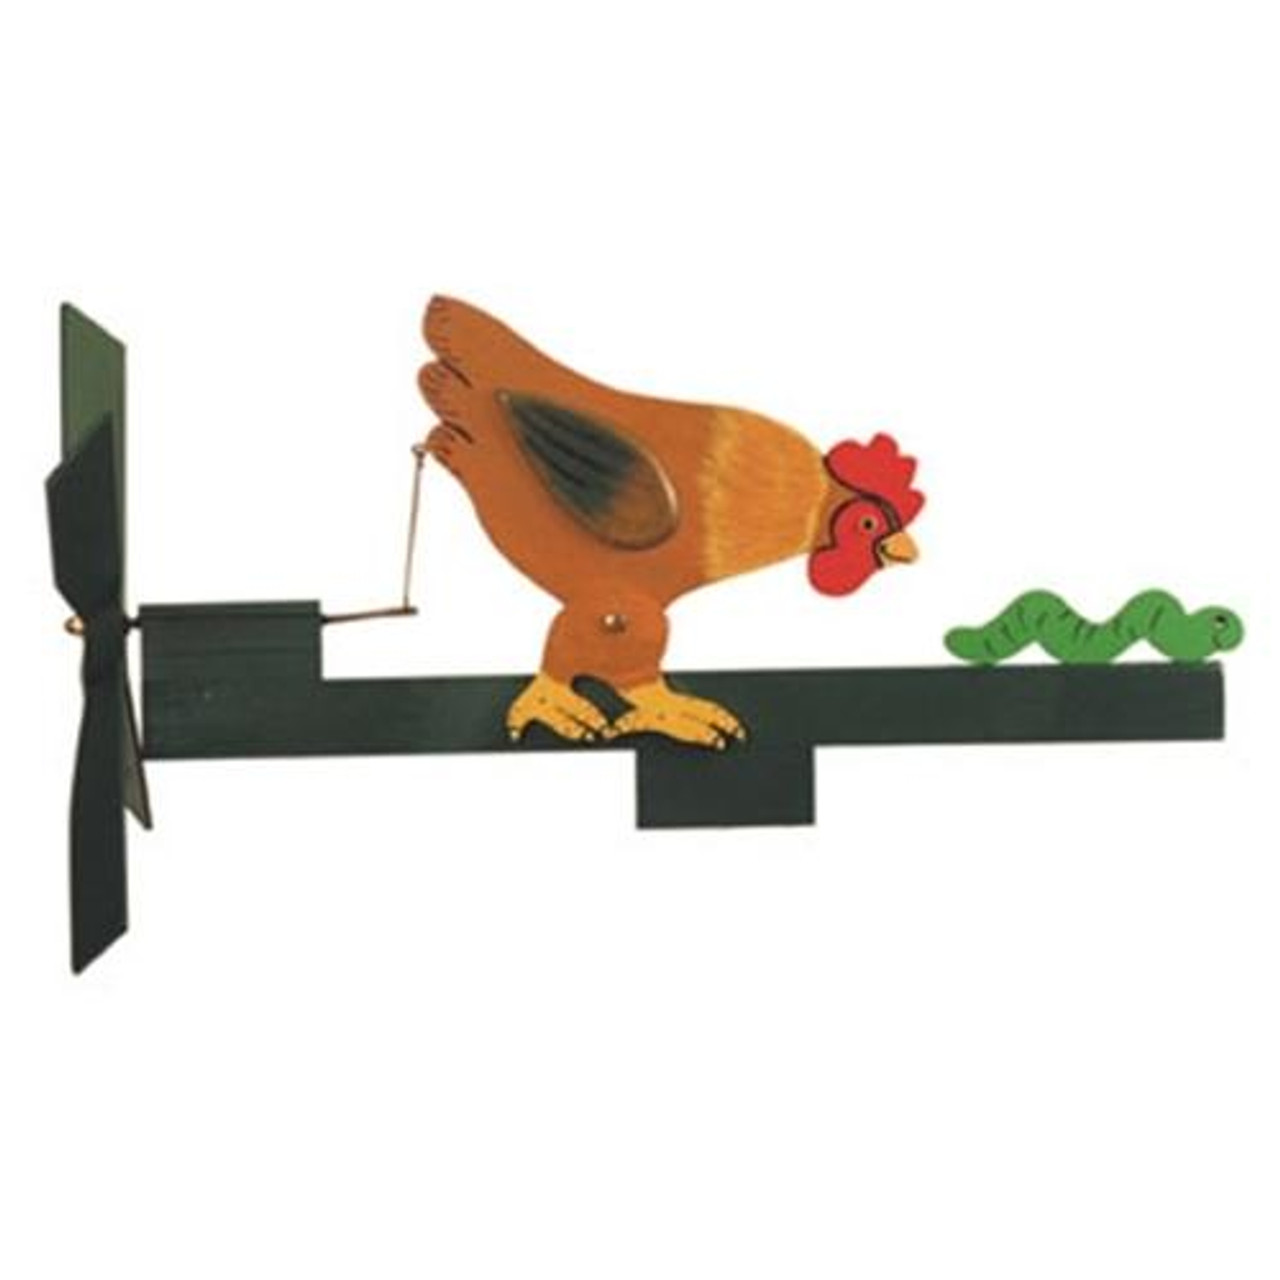 Cherry Tree Toys Chicken and Worm Whirligig Hardware Kit